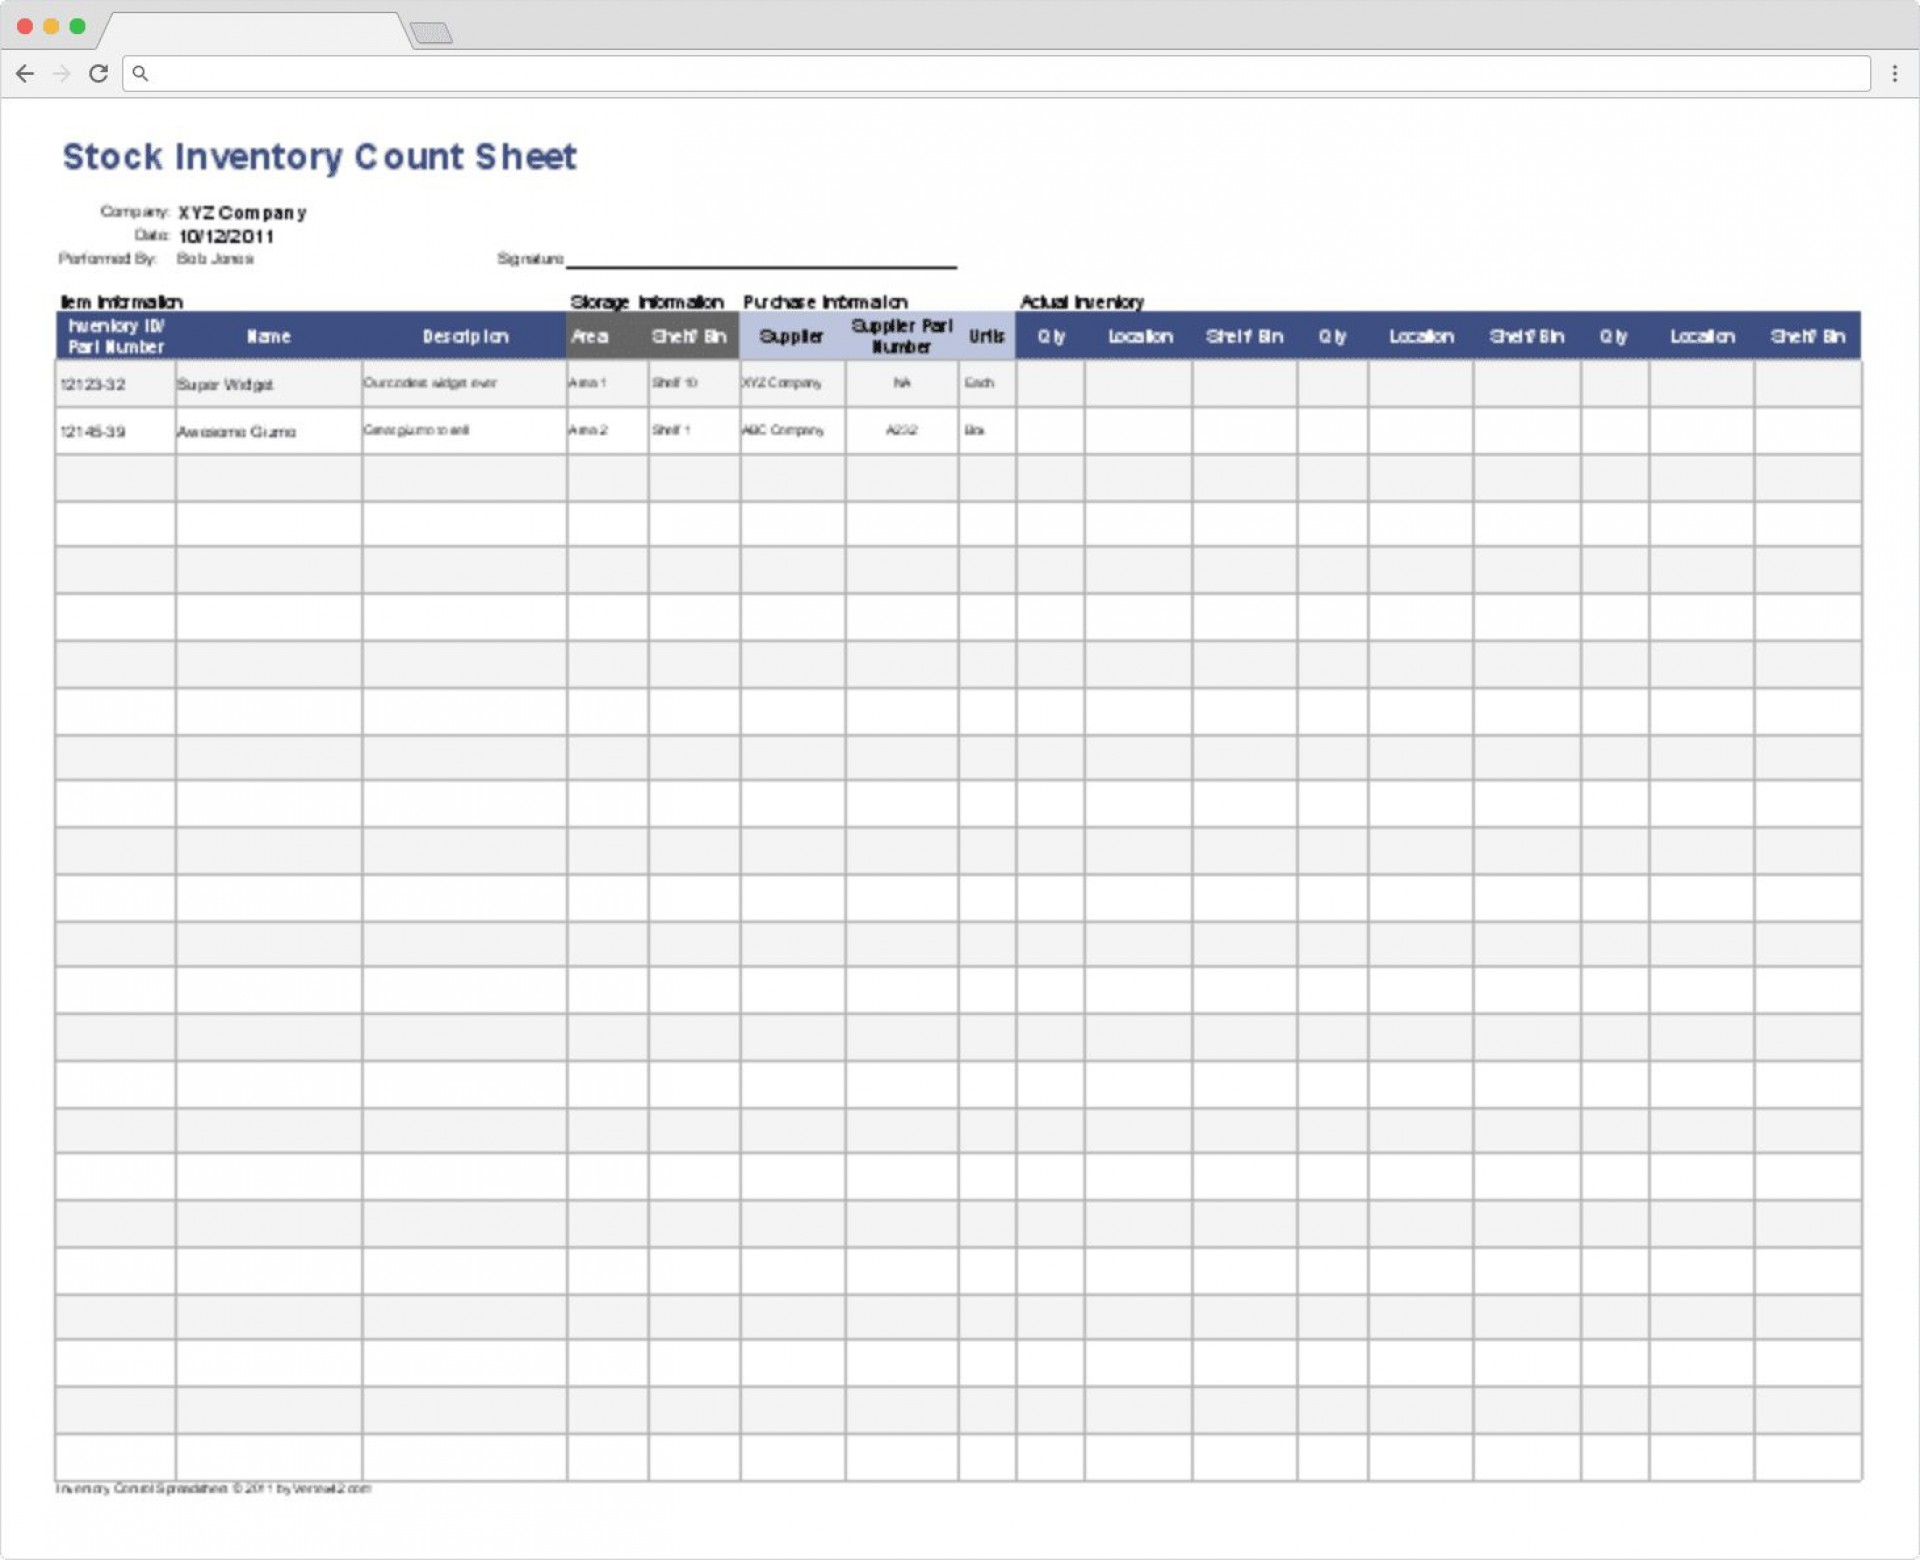 004 Dreaded Excel Inventory Template With Formula Image  Formulas Free Uk Pdf1920